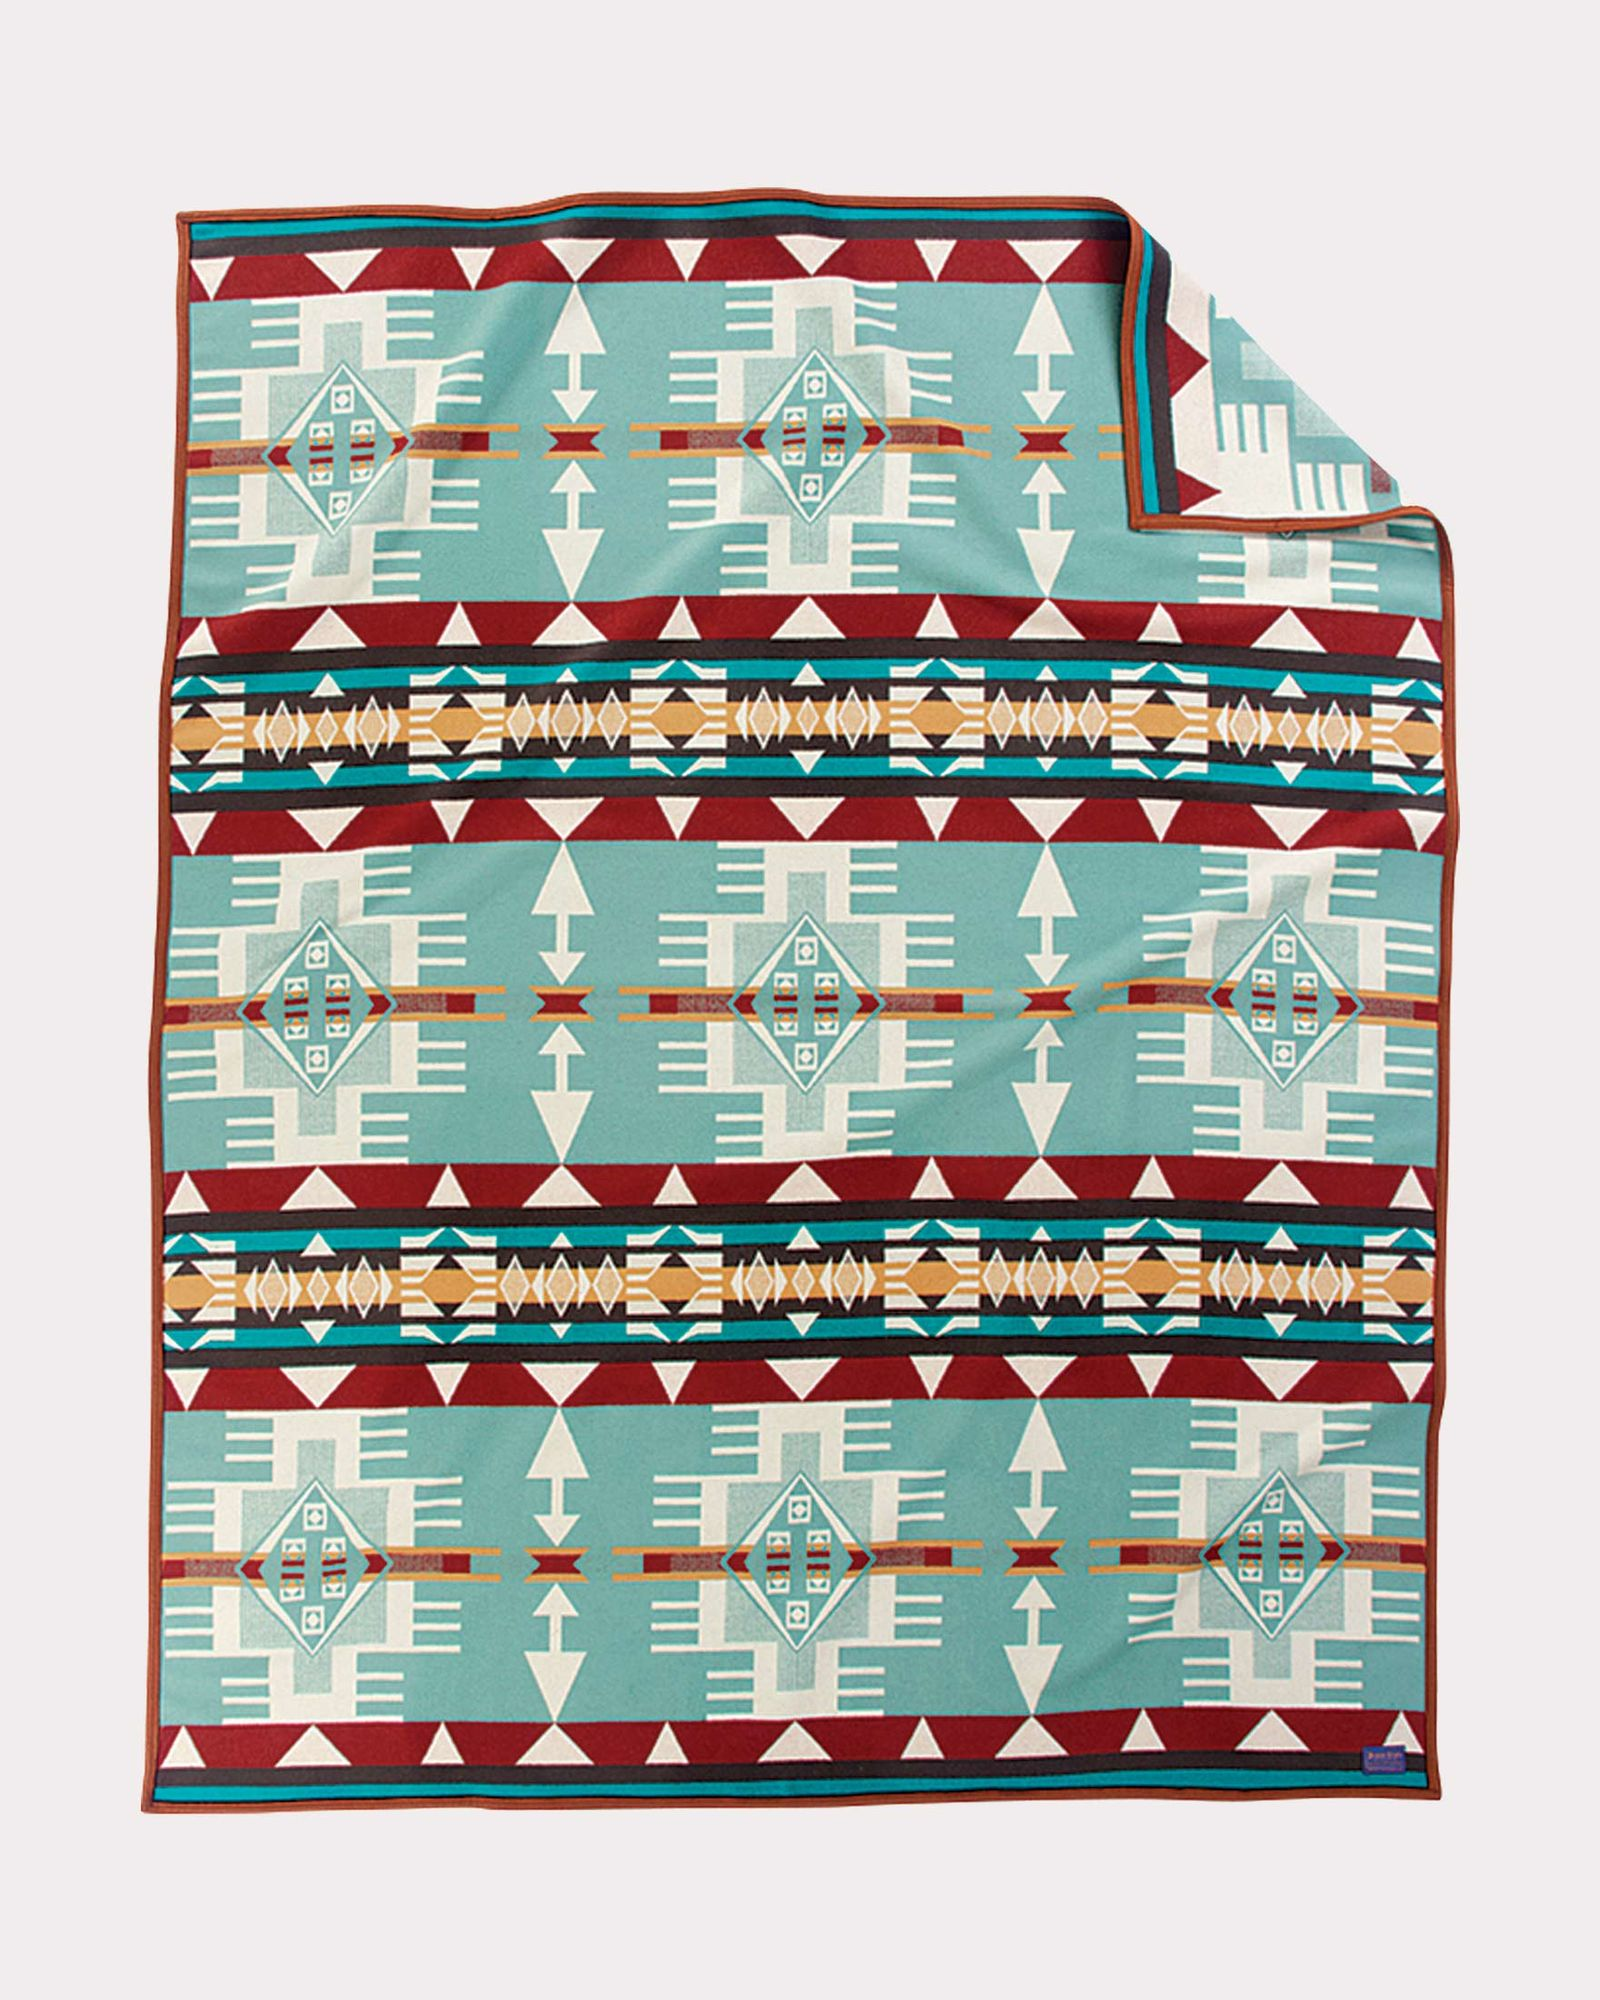 The Hacienda blanket by Pendleton, a geometric pattern in turquoise, brown, gold and white.